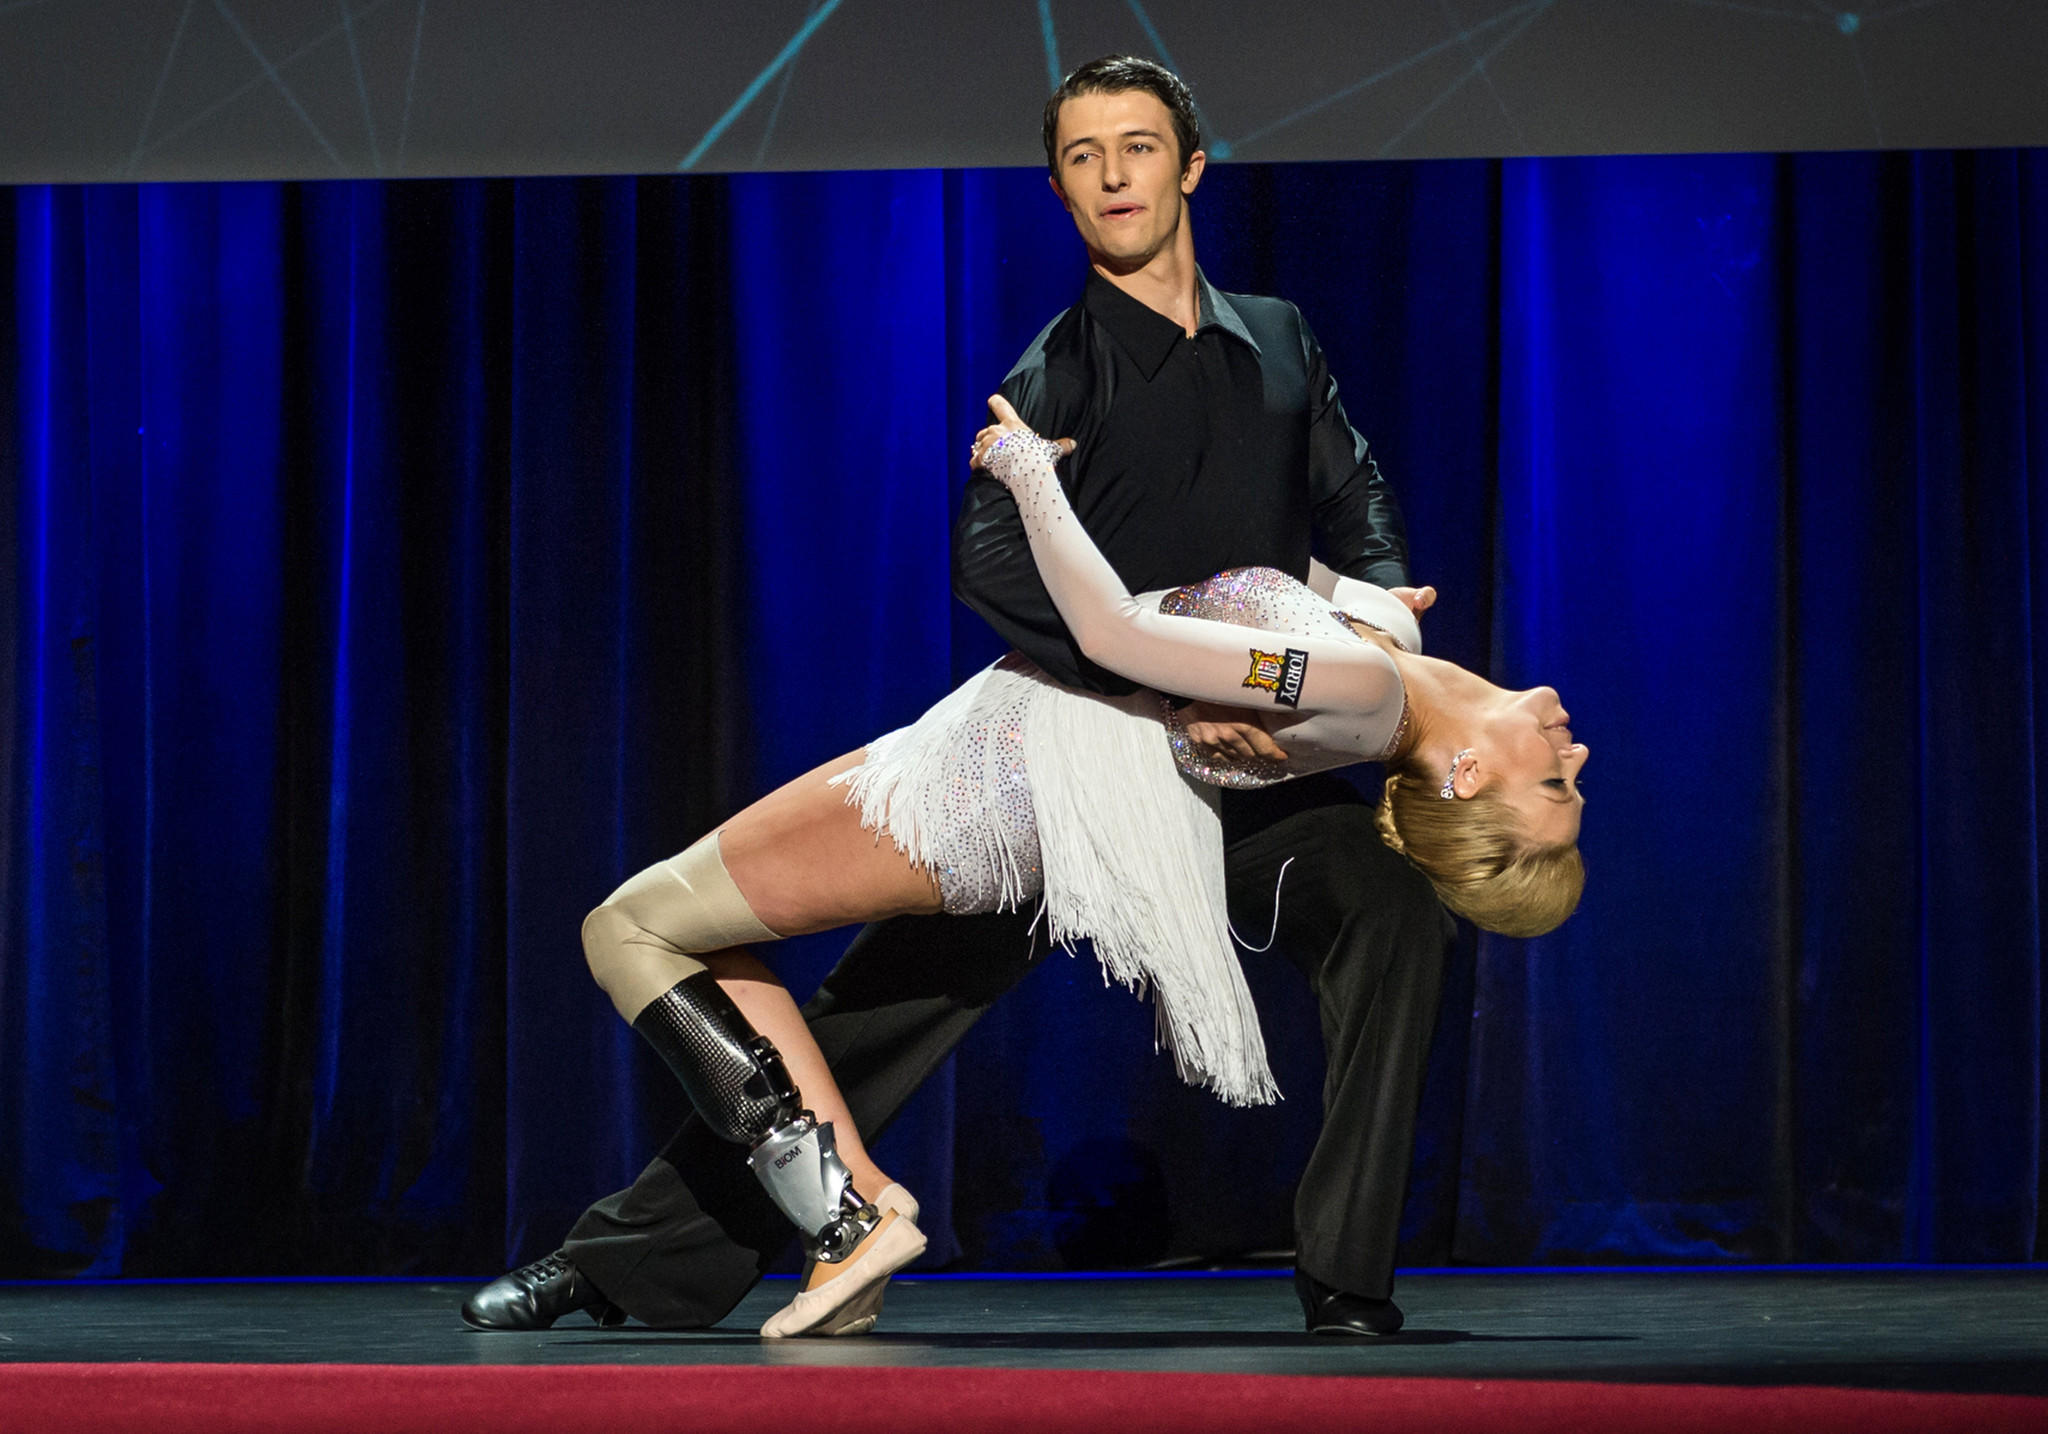 In this photo provided by the TED 2014 Conference, Adrianne Haslet-Davis performs onstage with fellow dancer Christian Lightner in Vancouver, British Columbia.